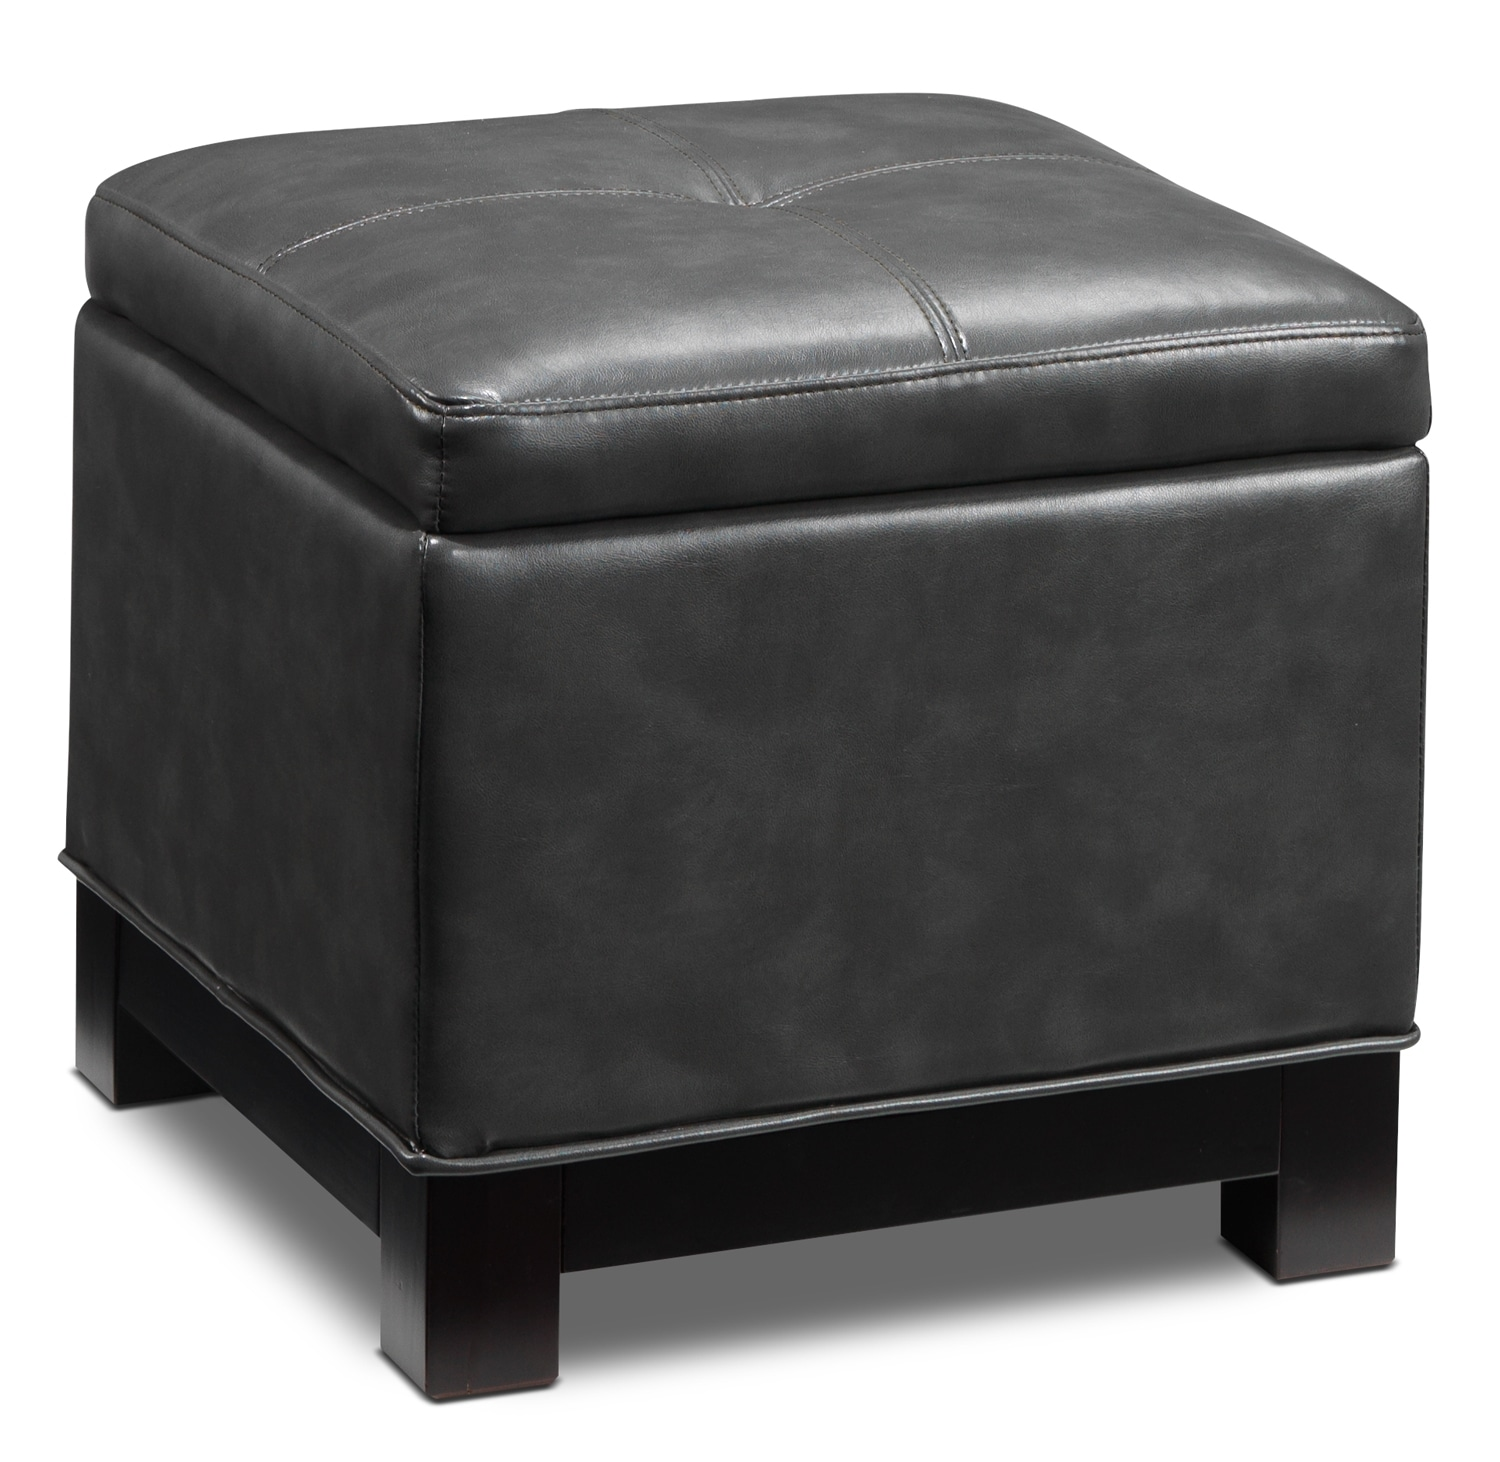 Accent and Occasional Furniture - Atlanta Storage Ottoman - Grey